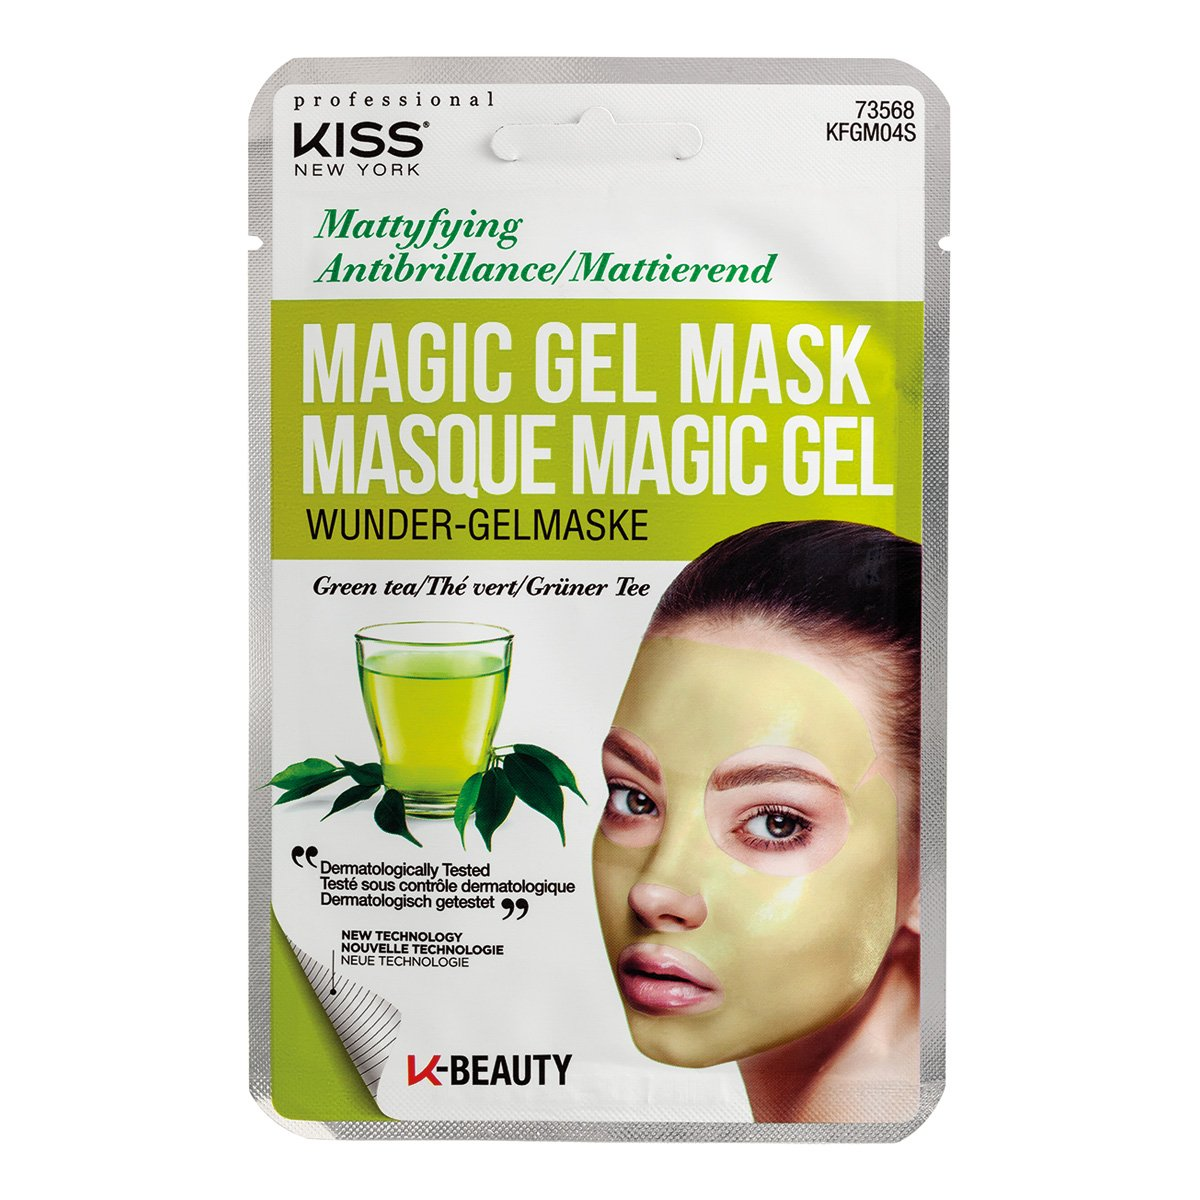 Máscara Facial Kiss New York - Magic Gel Mask Chá Verde - 1 Unid.